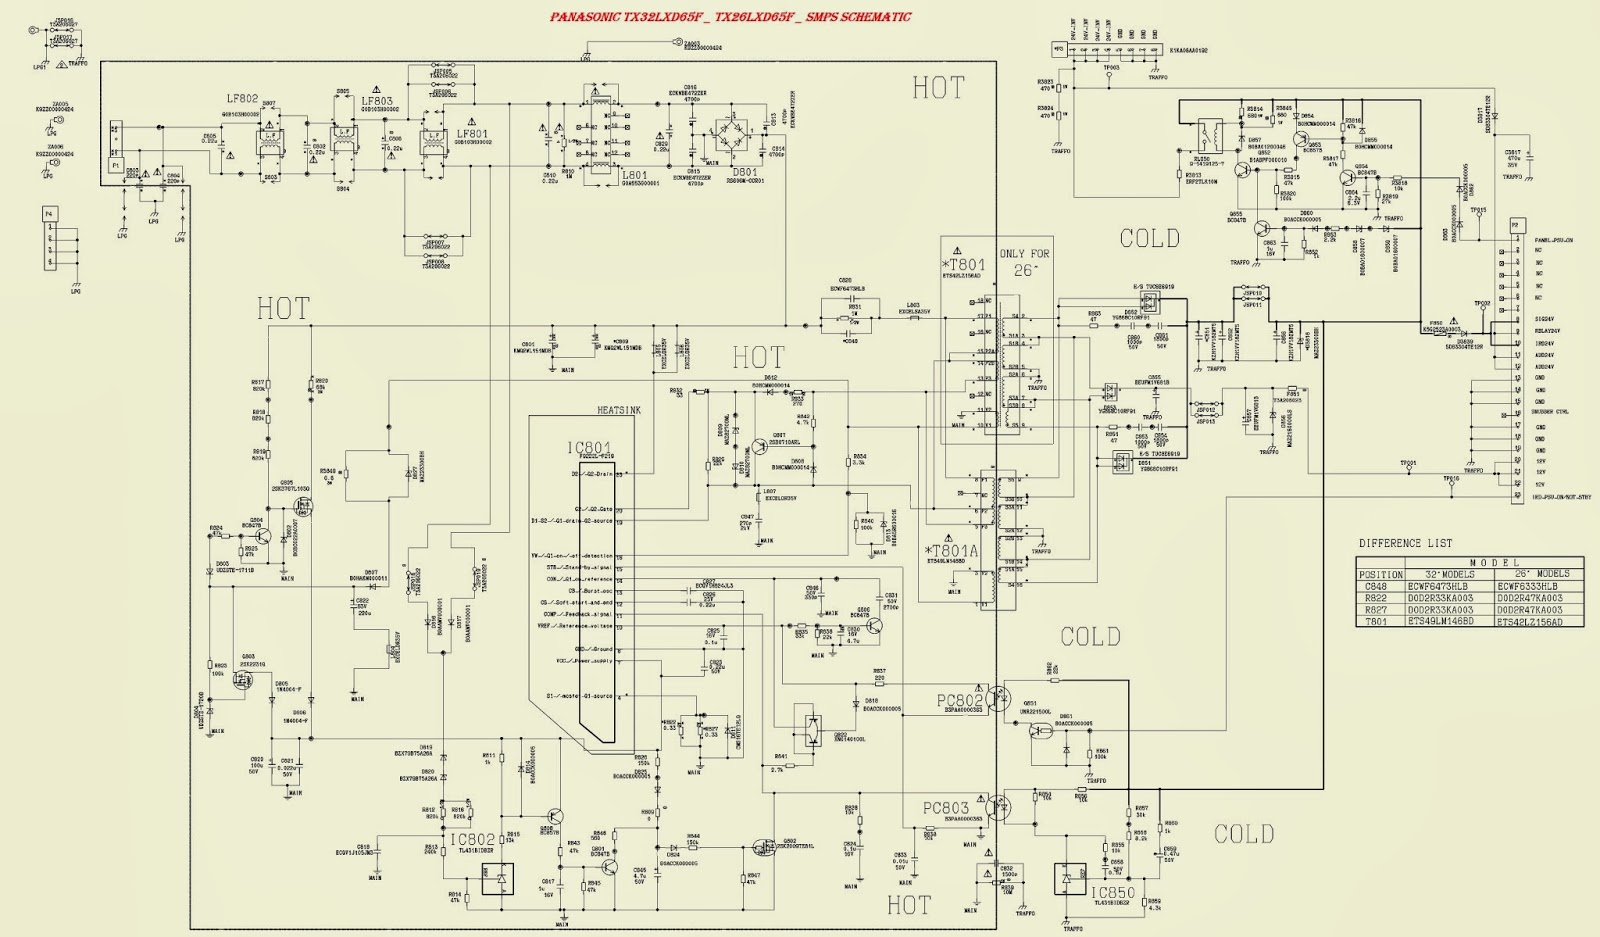 panasonic tx-26lxd65f - tx32lxd65f - smps (power supply ... panasonic tv wiring diagrams